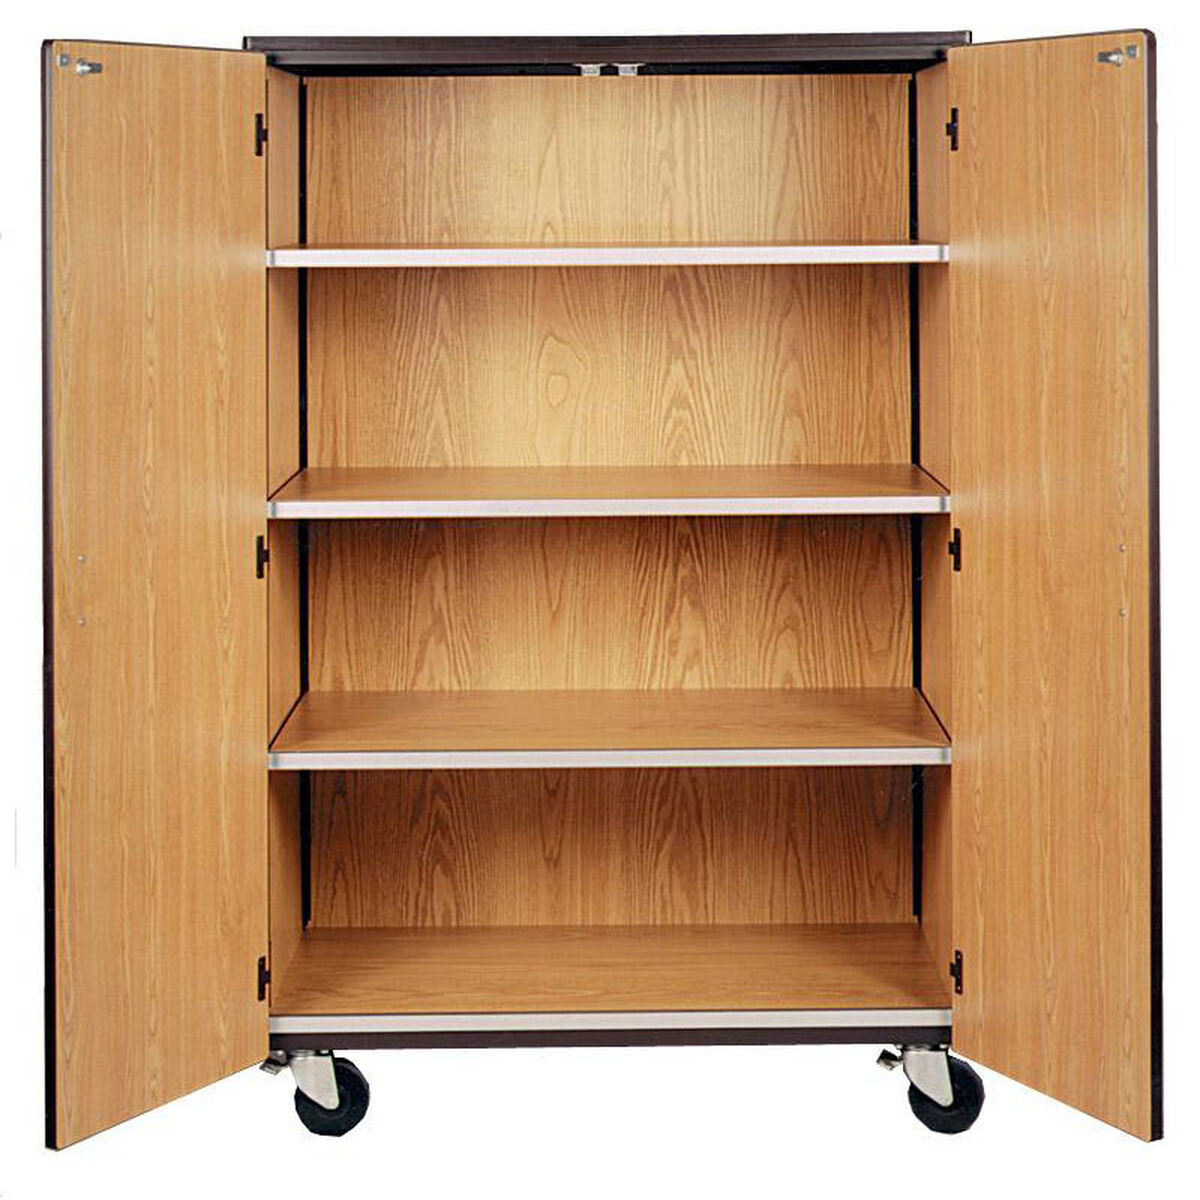 Our Mobile Band Storage Cabinet W Locking Doors Is On Now